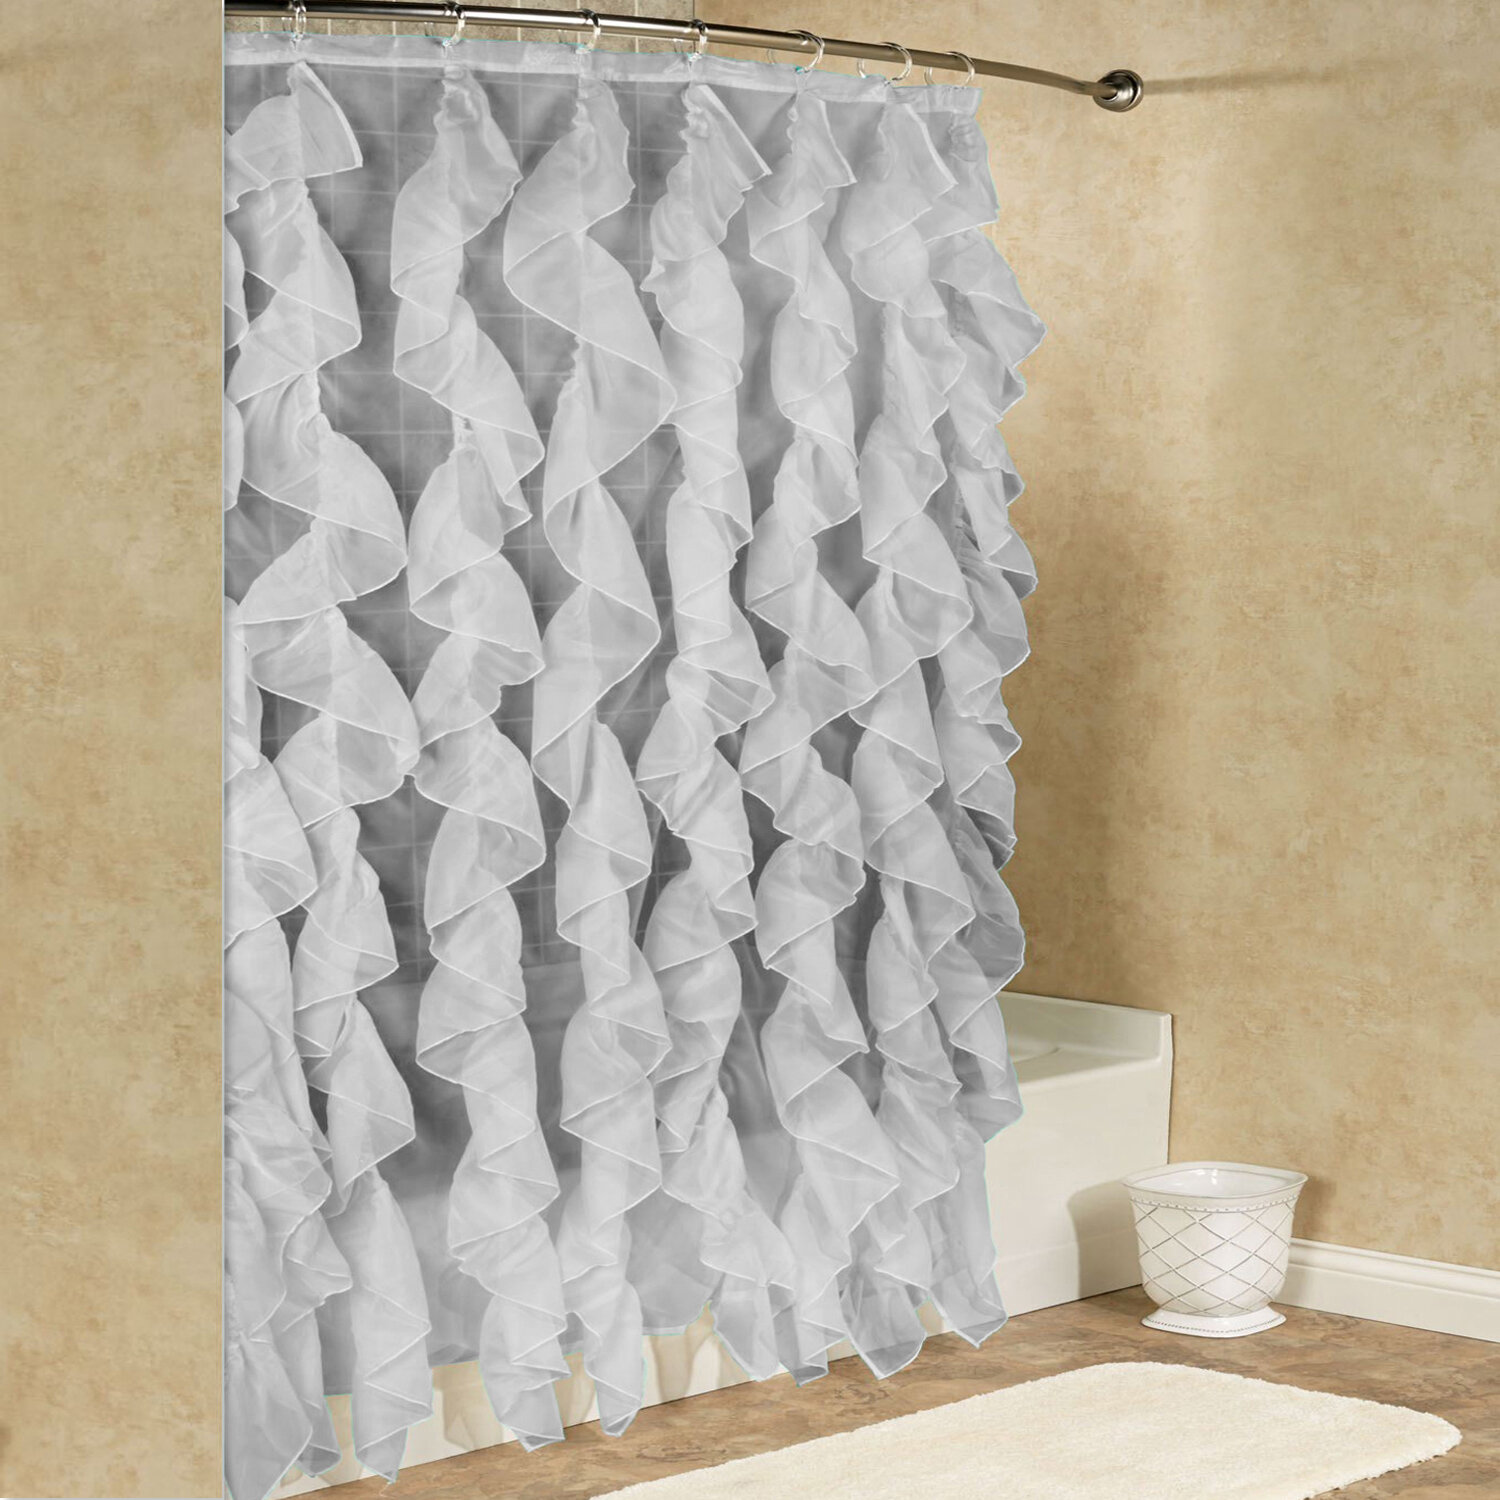 Sweet Home Collection Chic Sheer Voile Vertical Waterfall Ruffled Shower Curtain Reviews